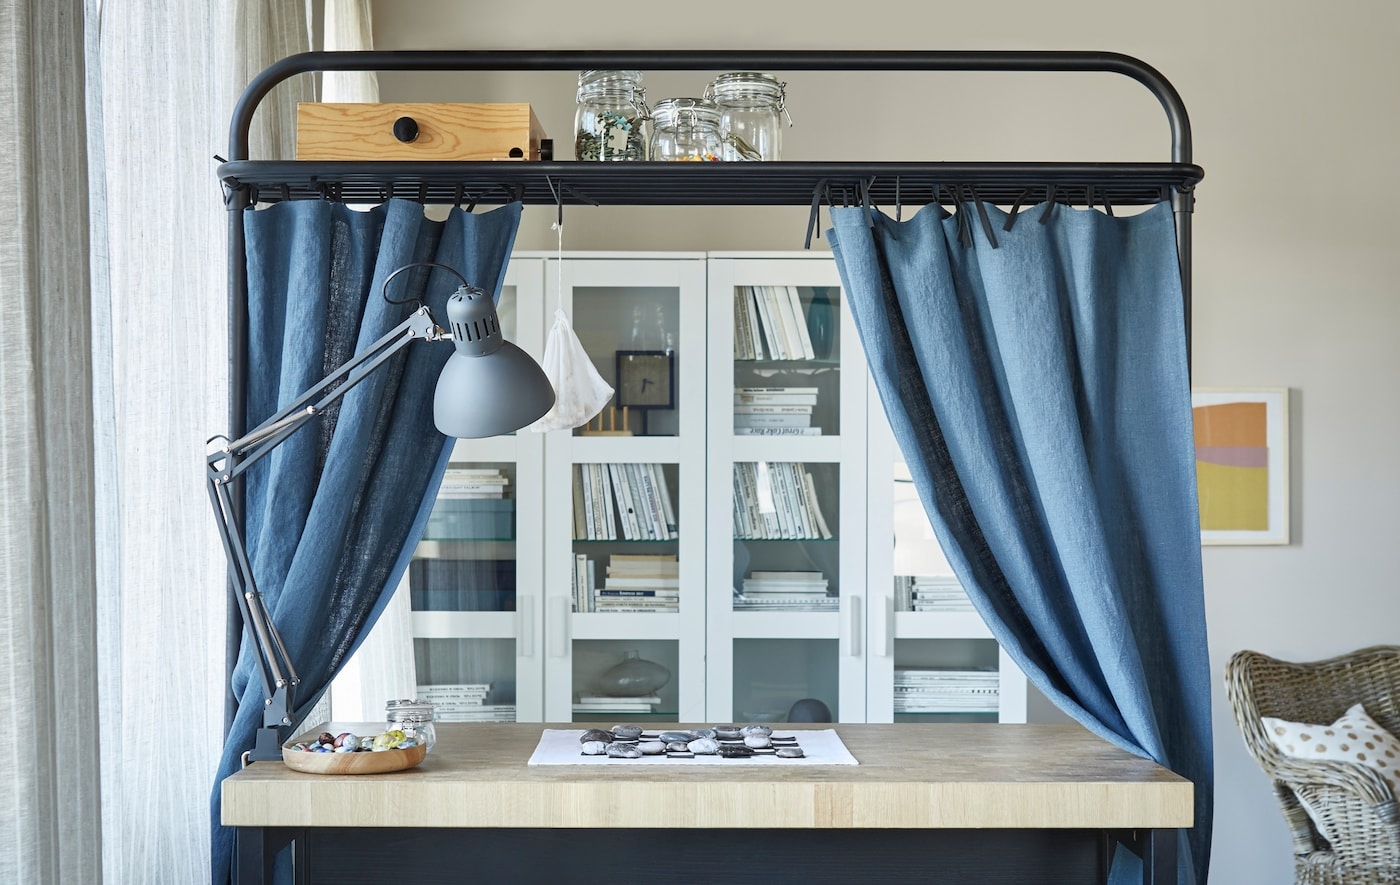 Placed in the living room, the island becomes an ideal spot for homework, board games and more. Here the overhead frame serves both as storage space and rod for functional, decorative curtains.